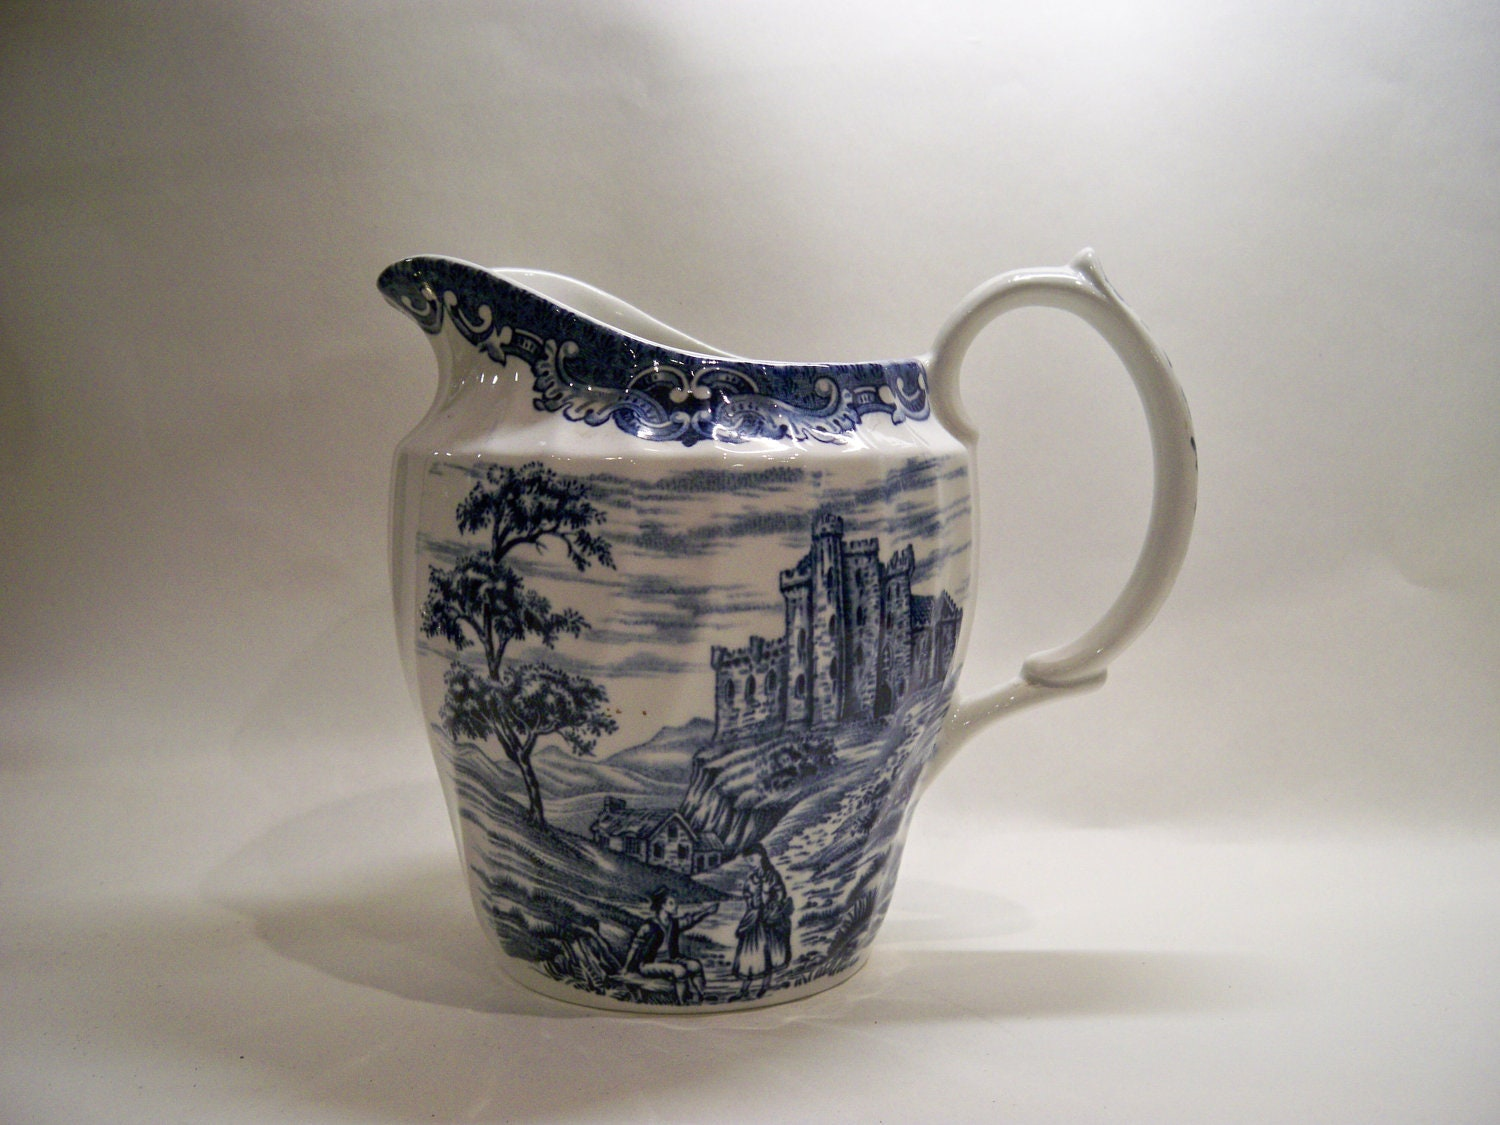 Vintage Country Castles Blue and White pitcher/Jug - PrattsPatch